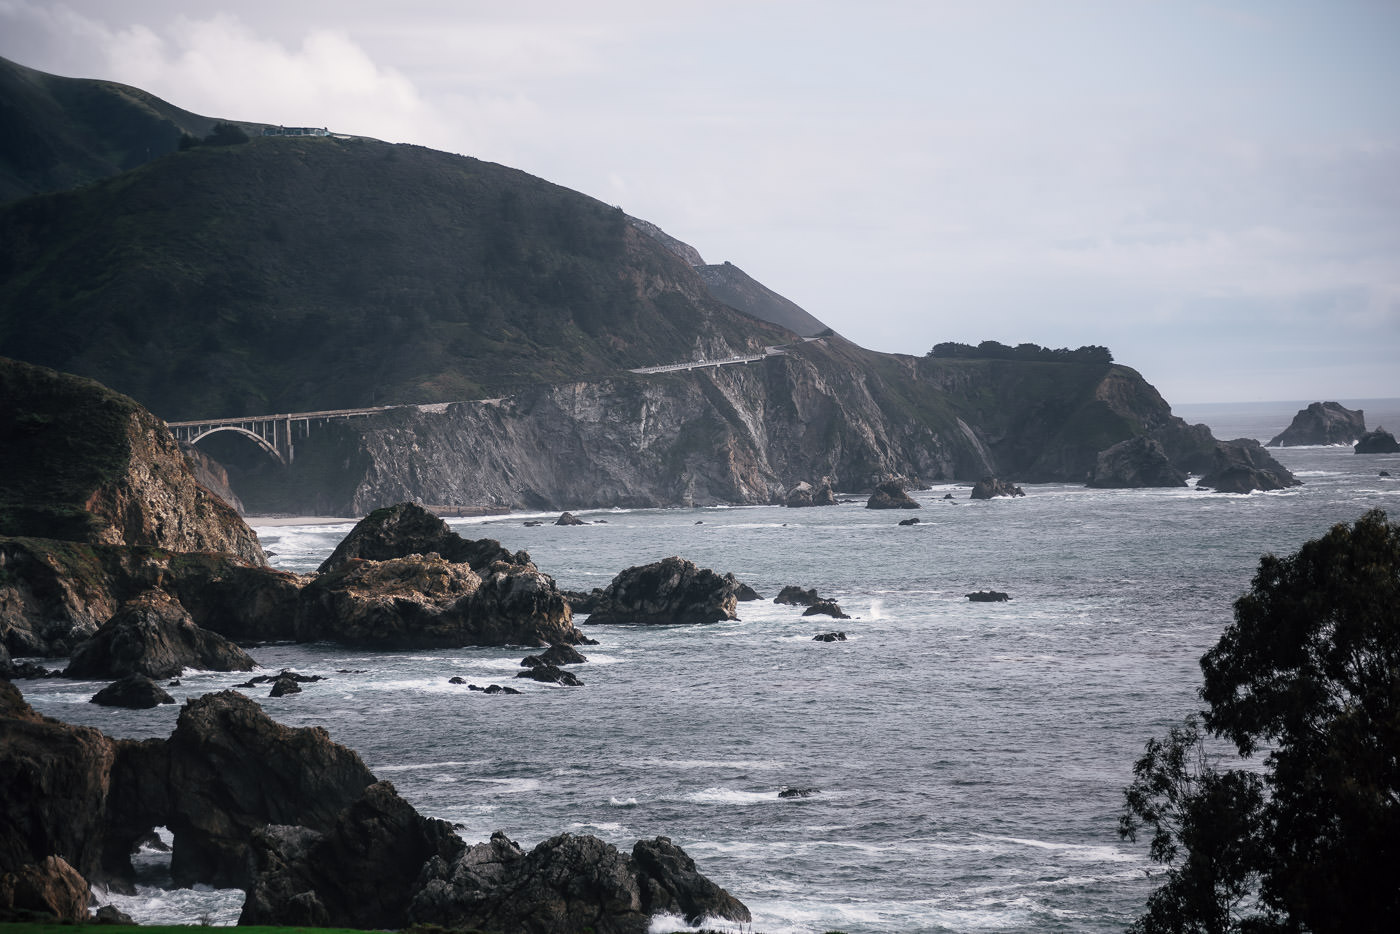 The stunning coastline of Big Sur is an unforgettable sight